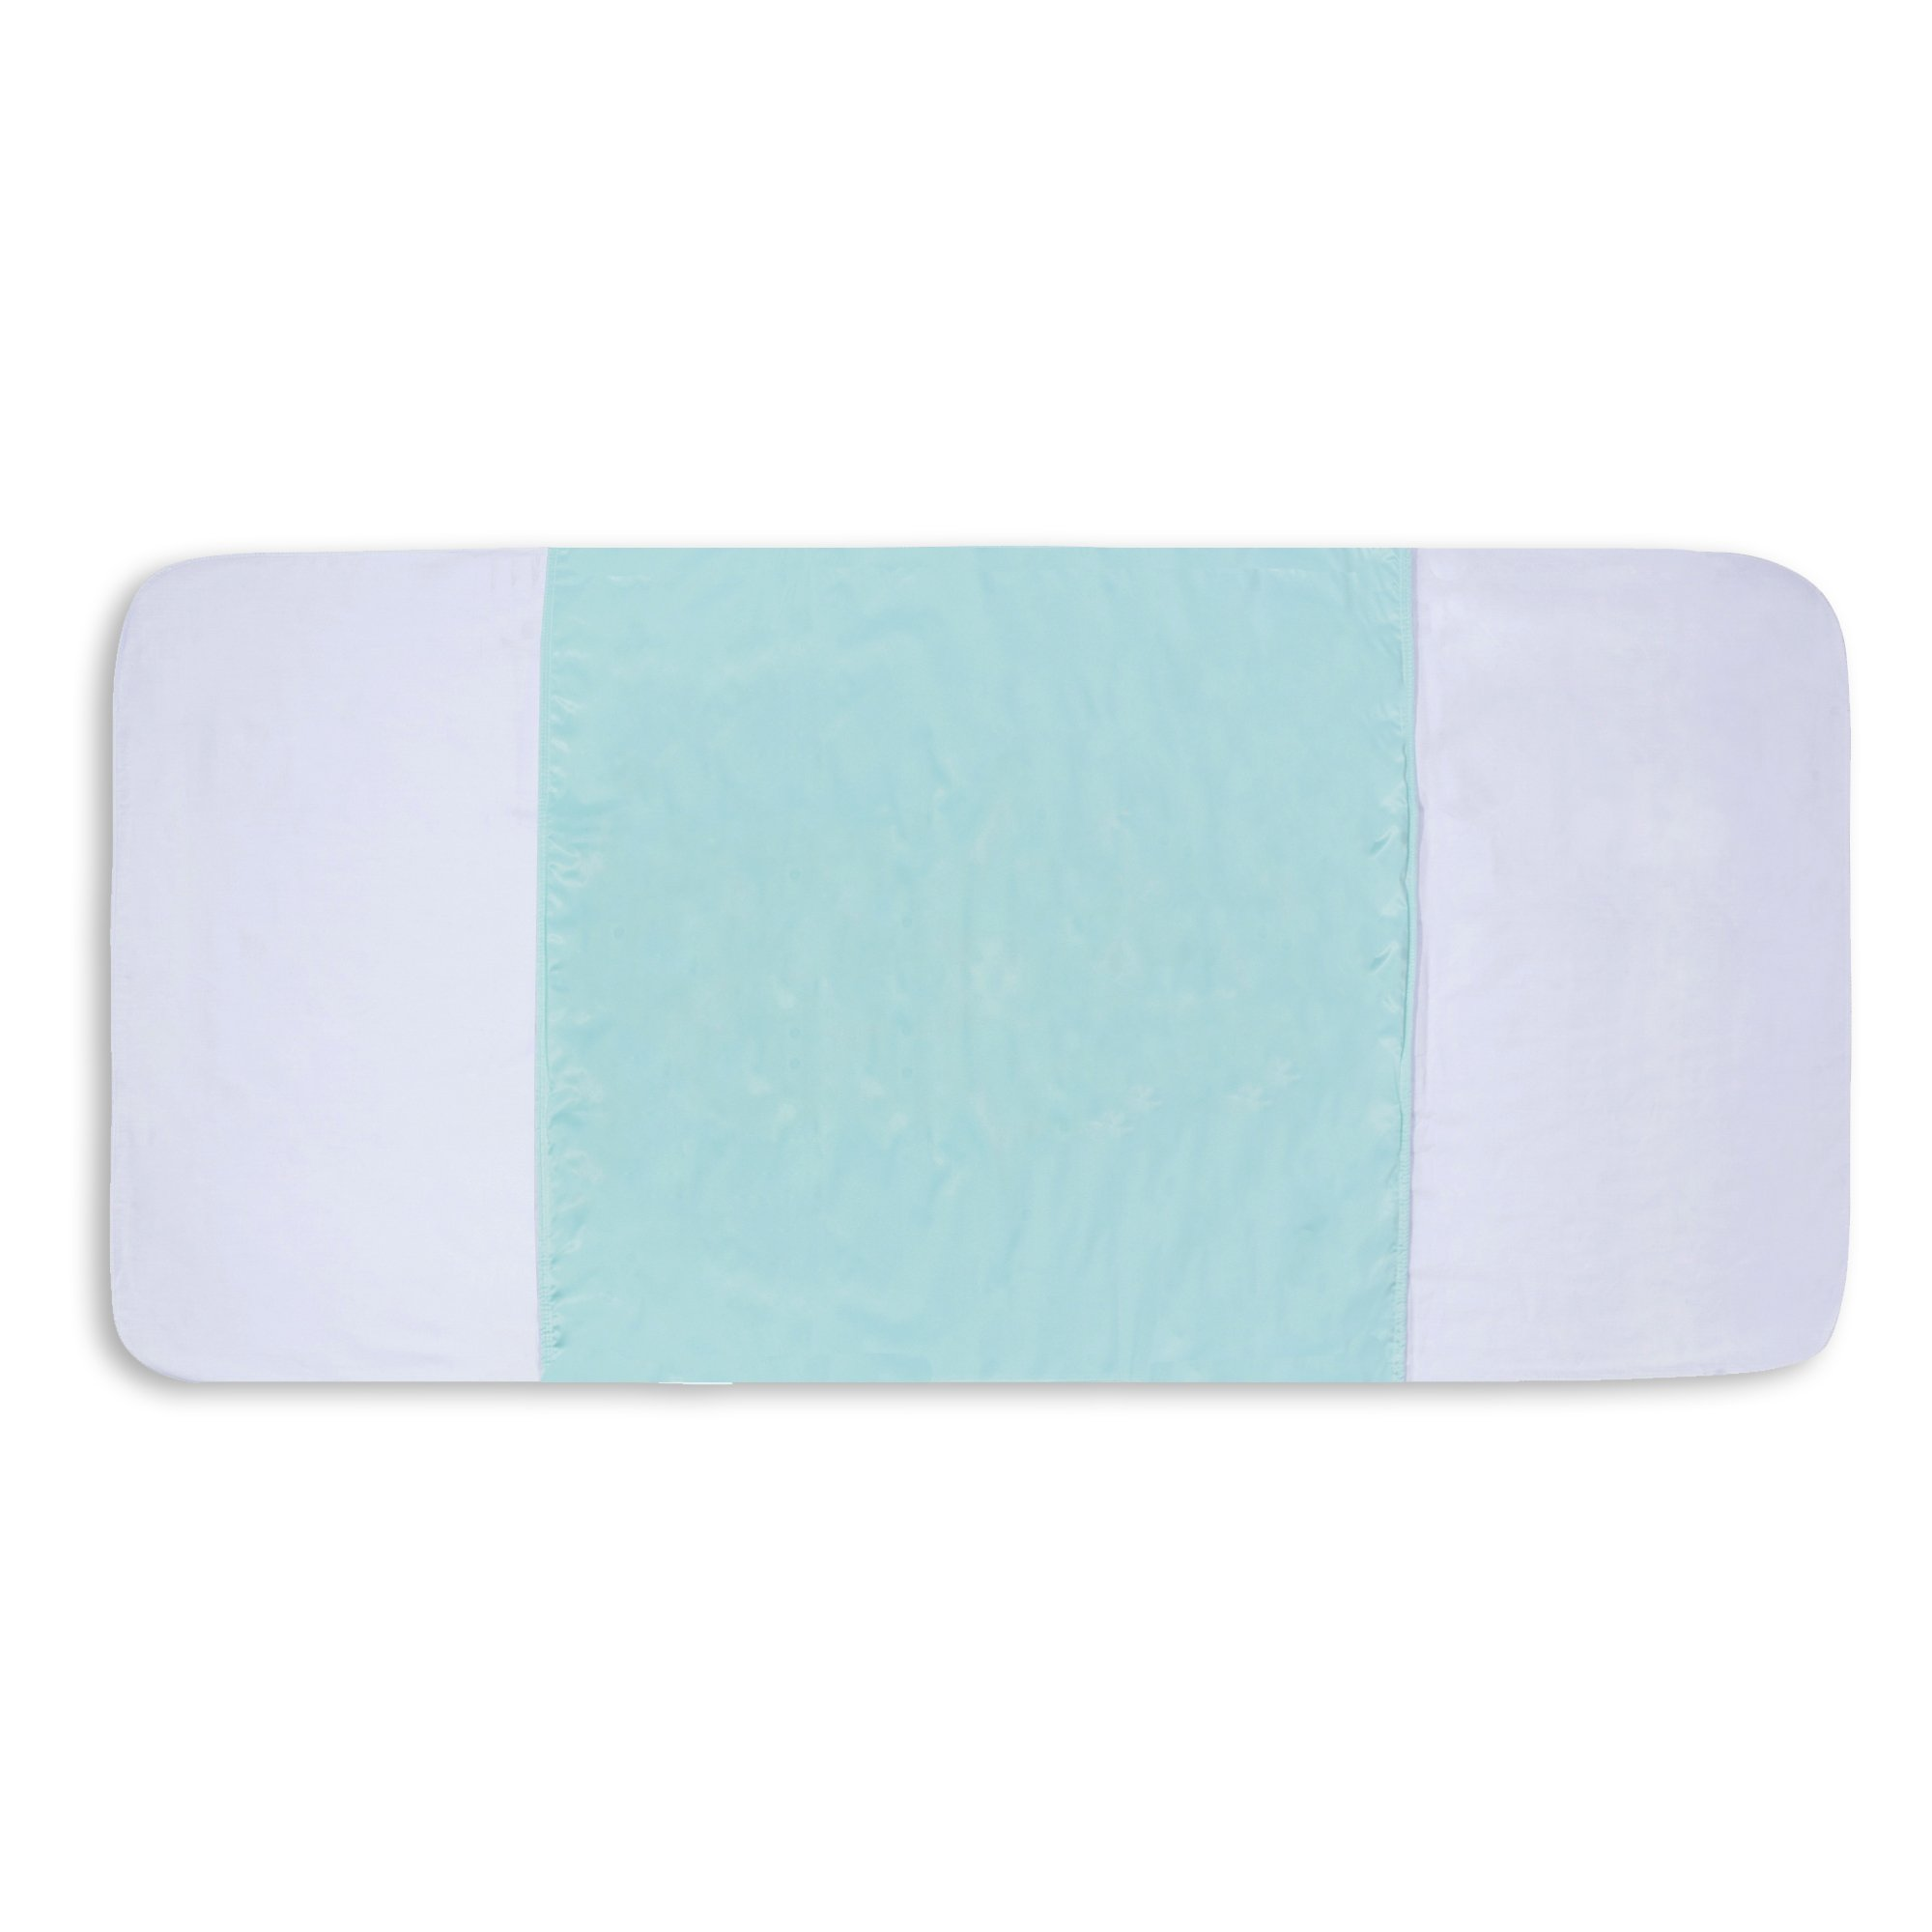 Saddle Style Reusable Waterproof Bed Pad - Made in America (34'' X 36'')- 3 Pack (LIGHT GREEN)